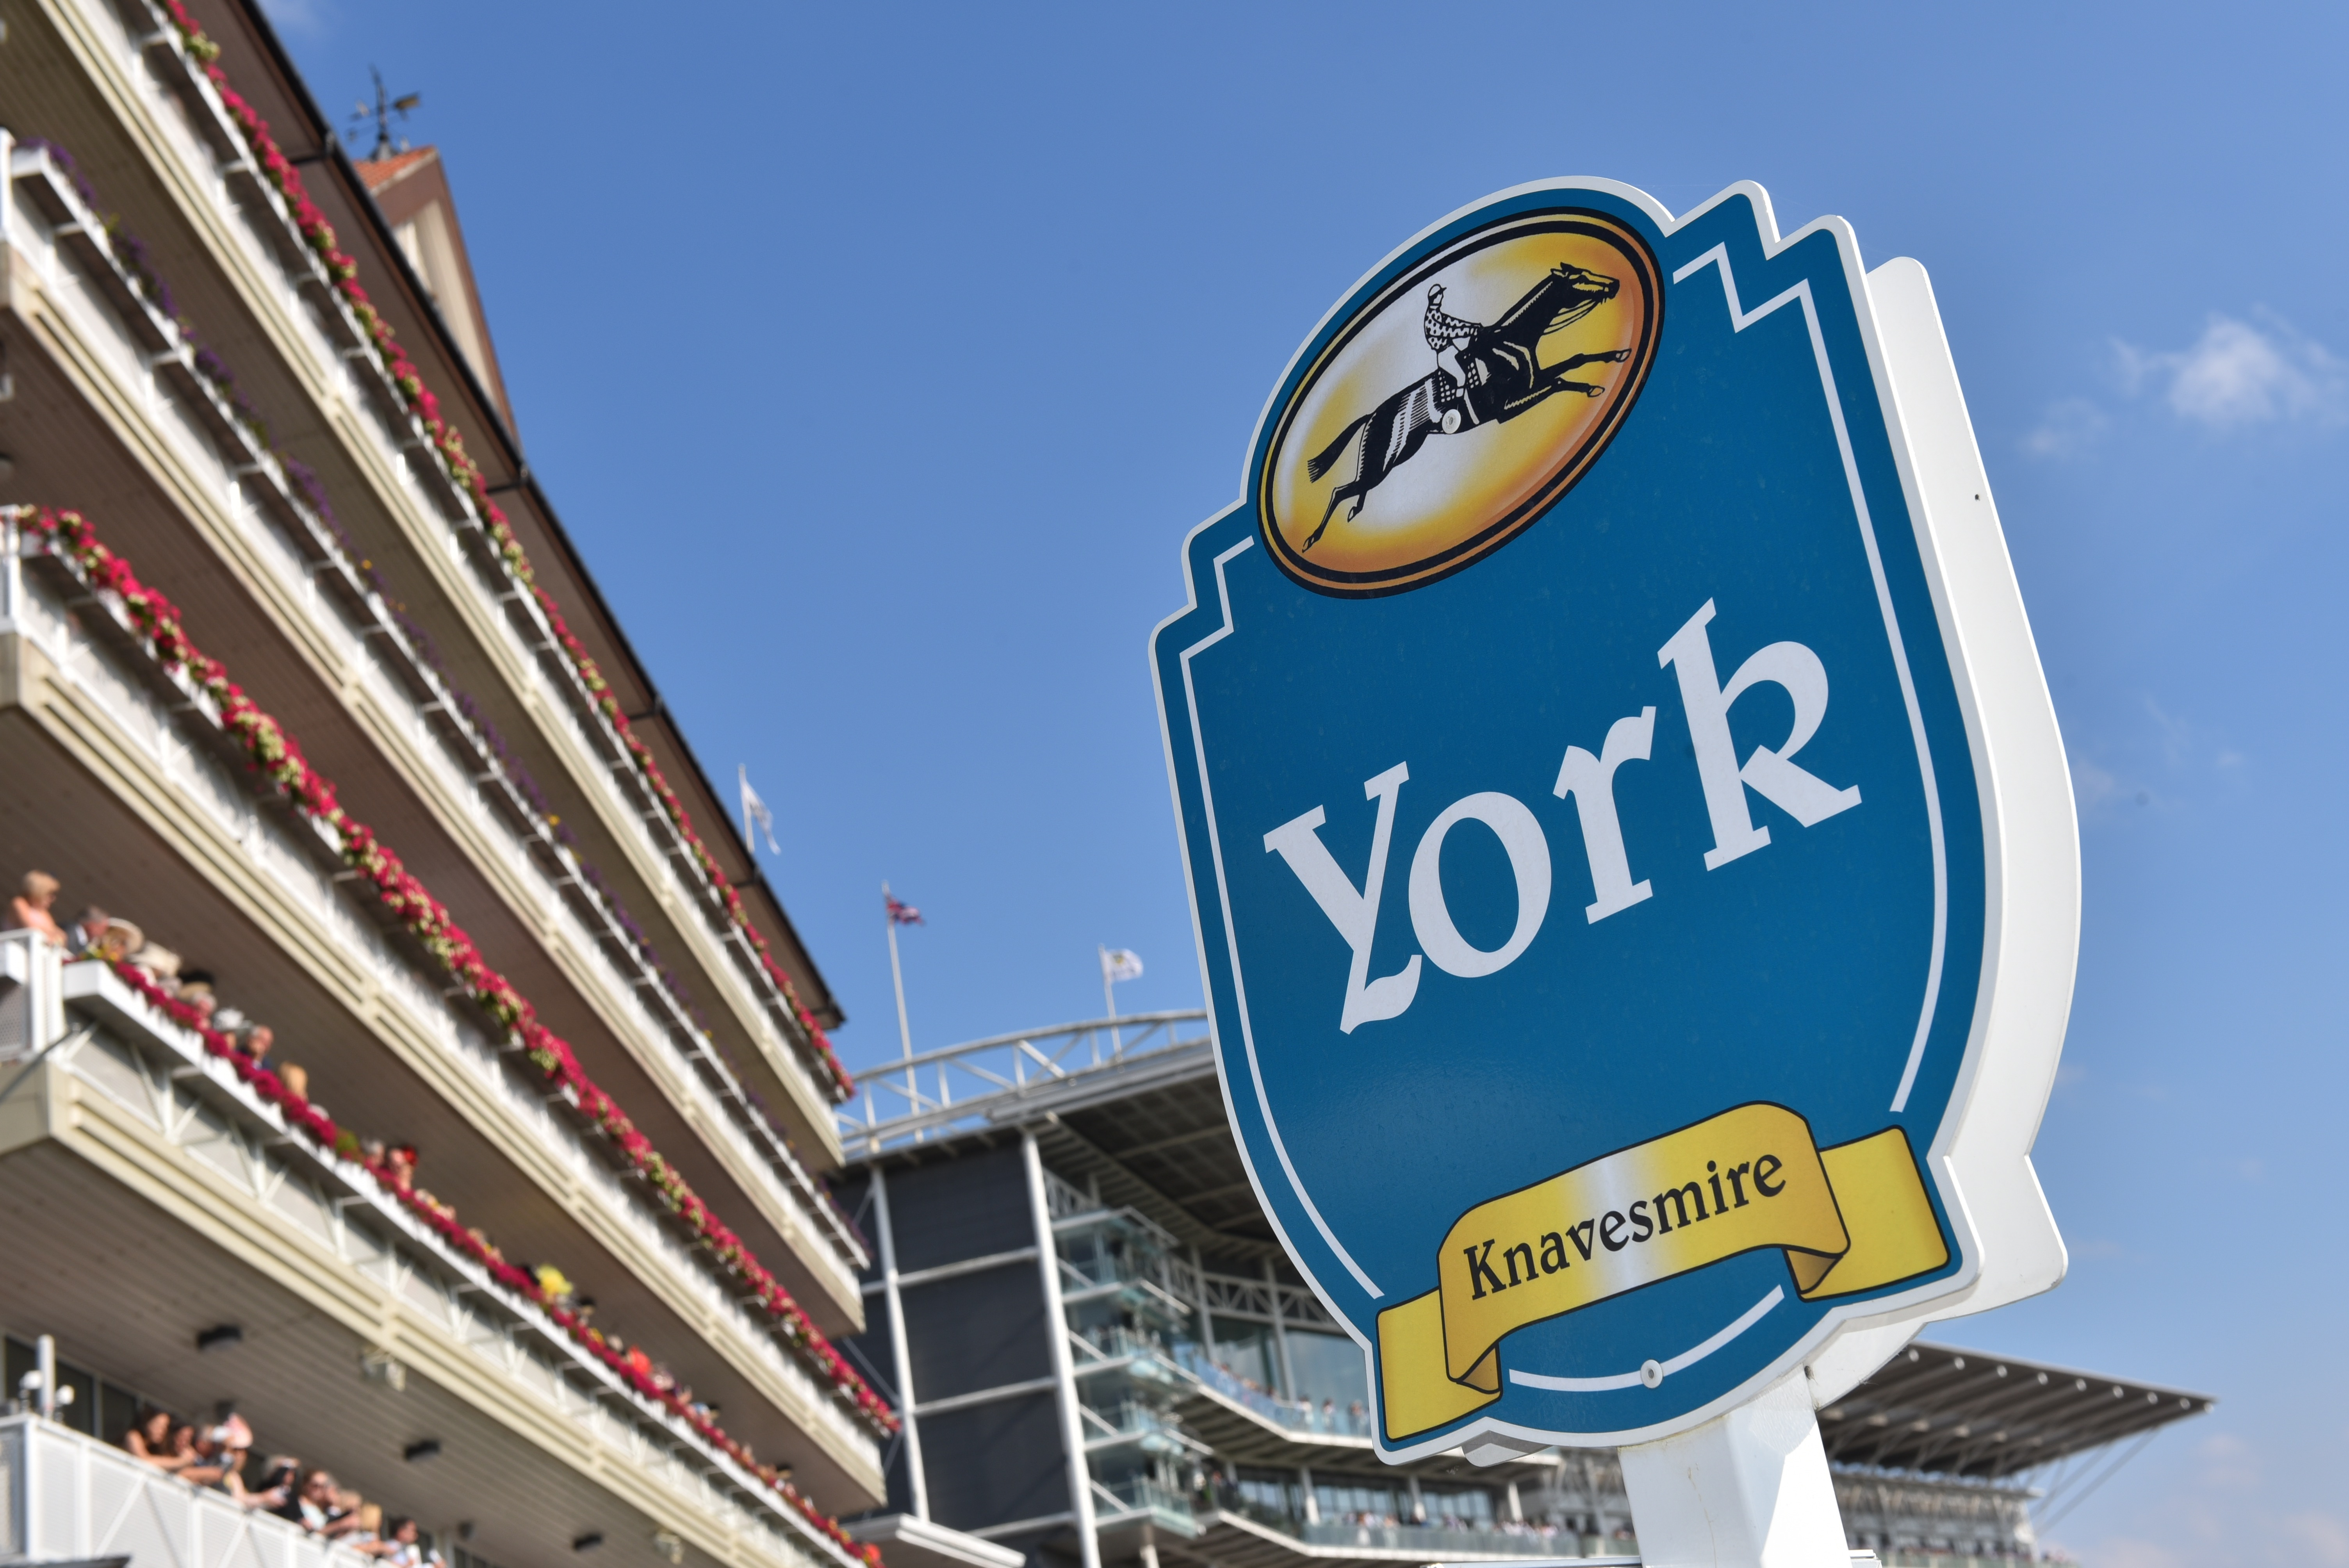 YORK RACECOURSE 2016 – More memories and new facilities